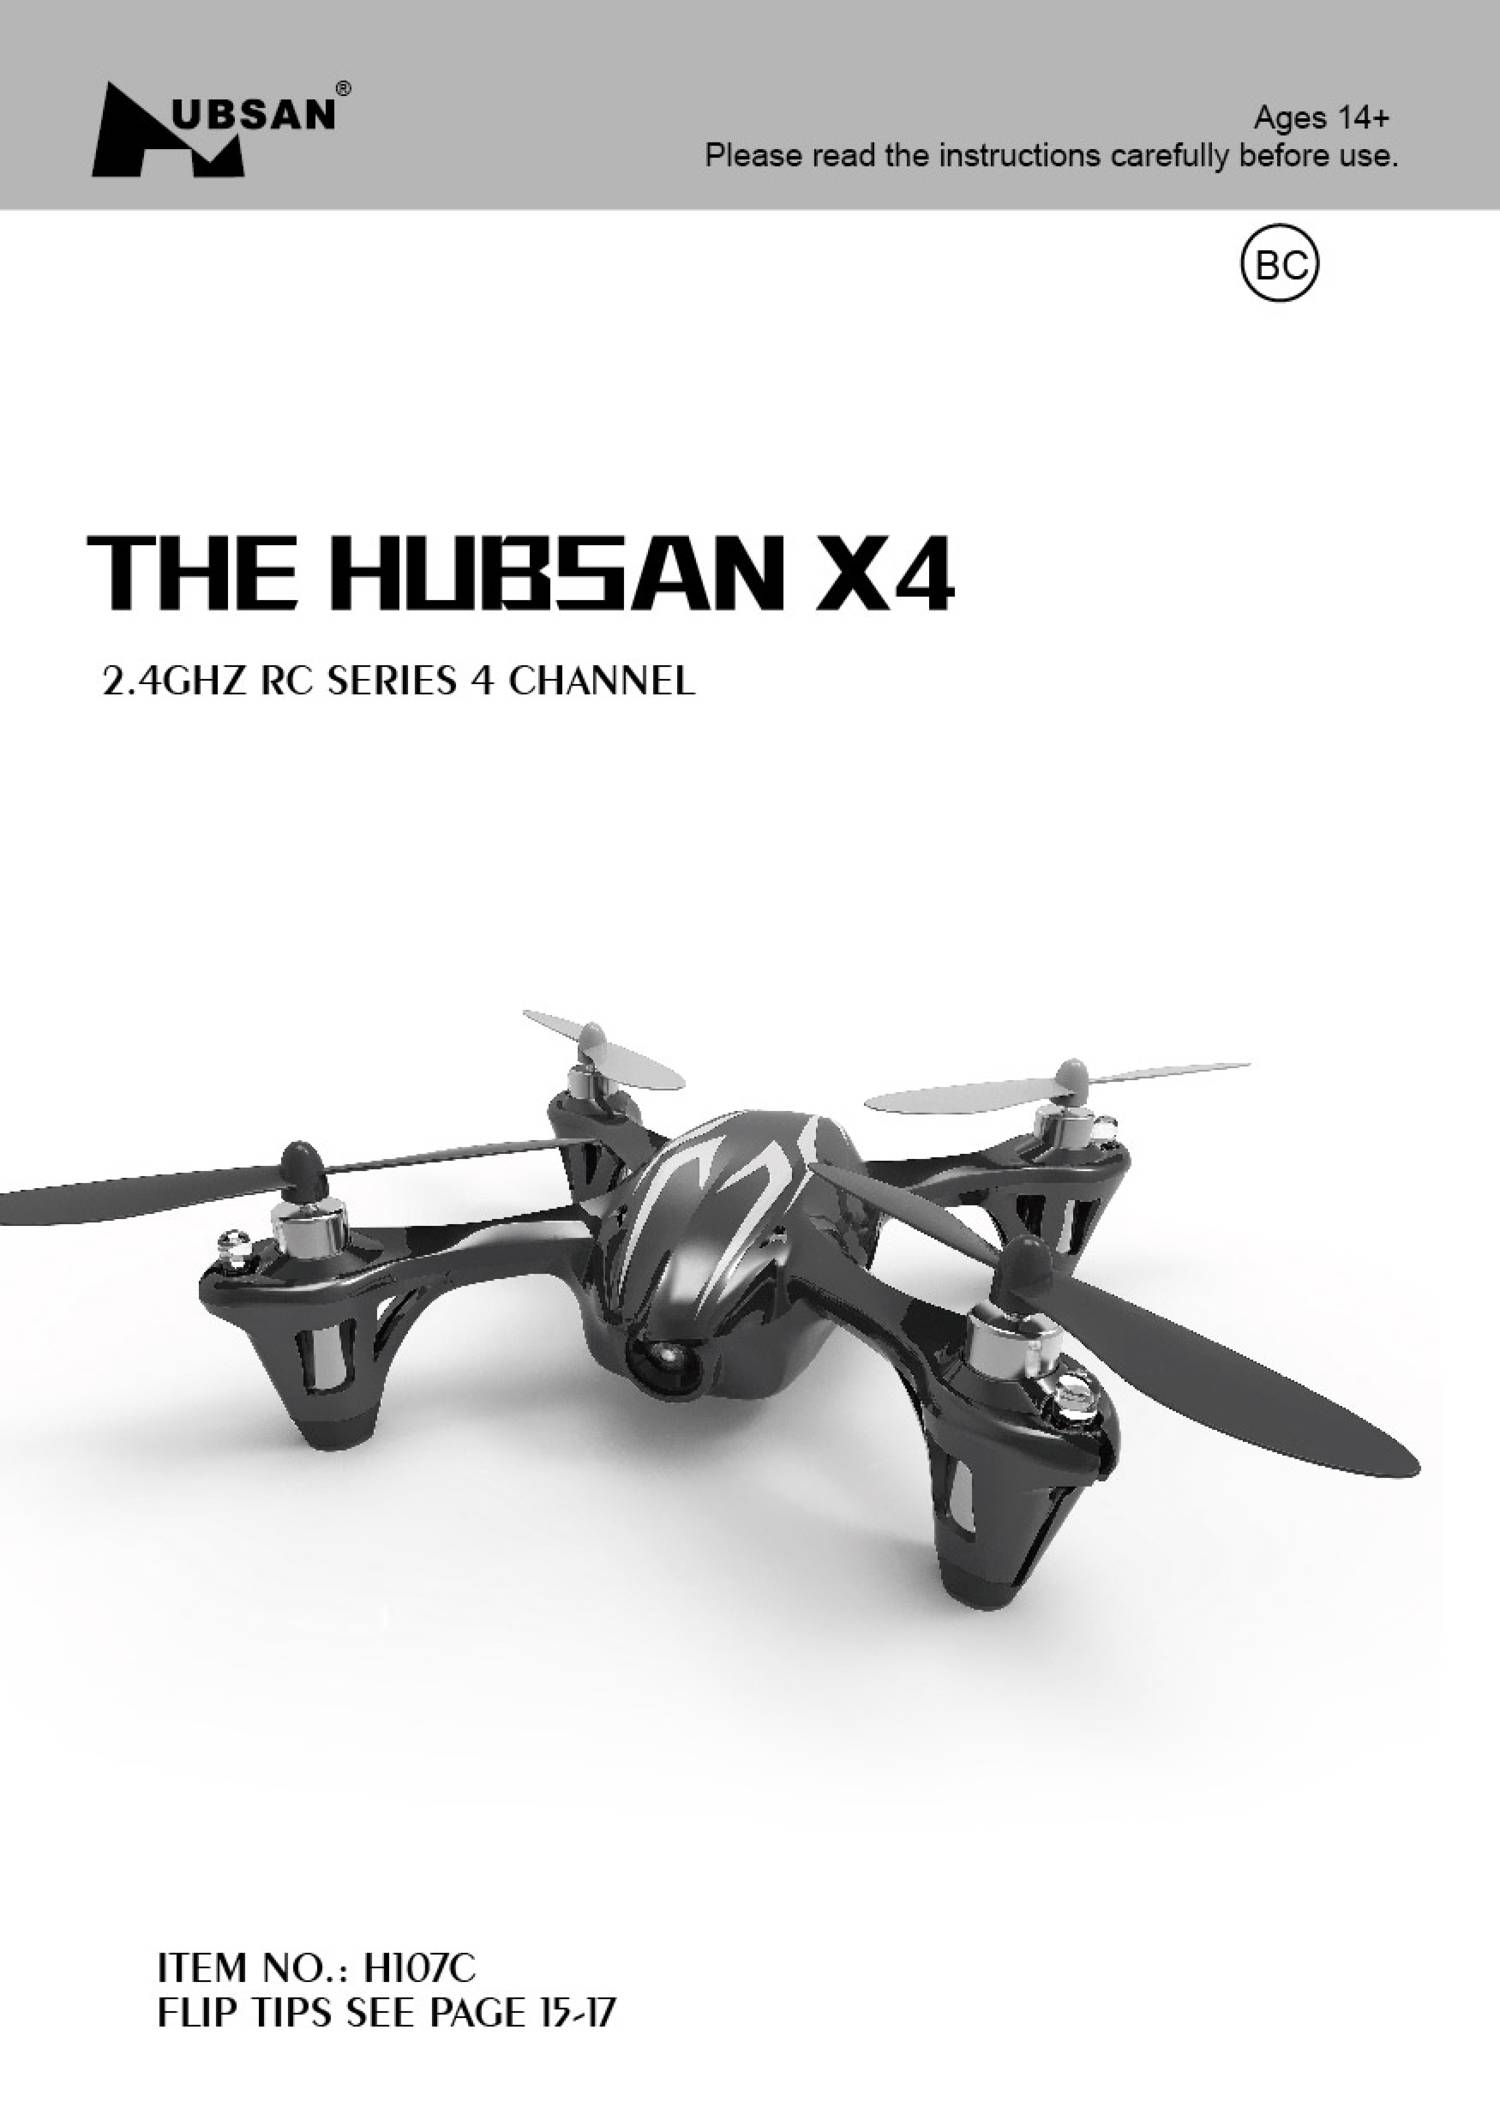 hubsan x4 h107c user manual hubsan x4 drone wiring diagrams wiring diagrams hubsan x4 h107c wiring diagram at cos-gaming.co